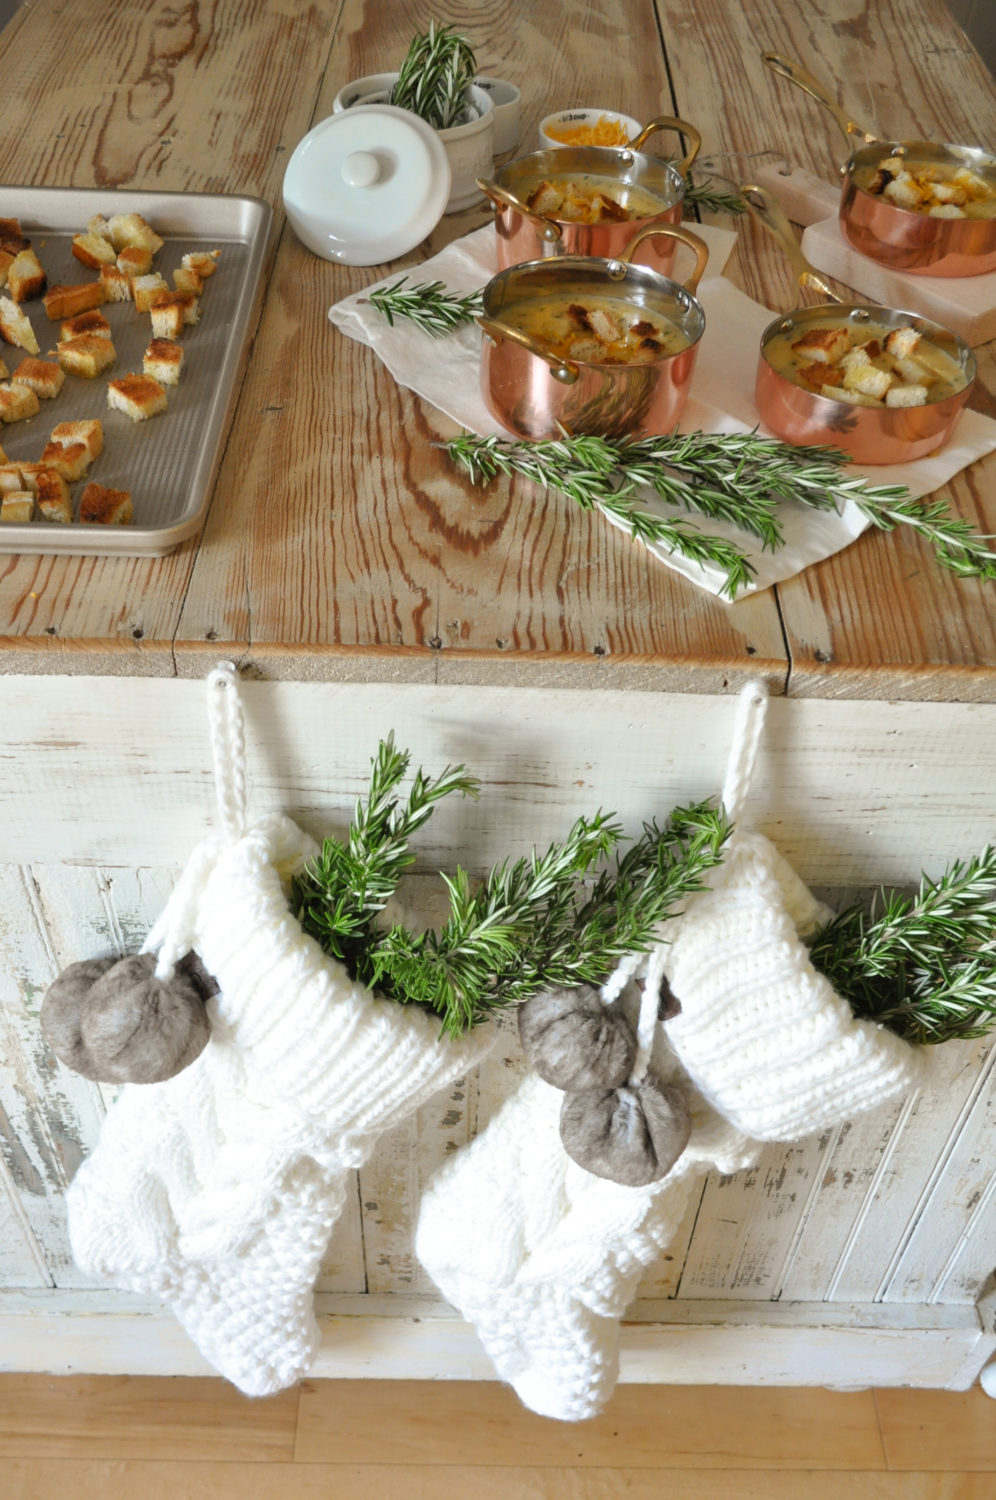 Bed Bath And Beyond Christmas Stockings.Holiday Gift Guide With Bed Bath Beyond Becky S Farmhouse